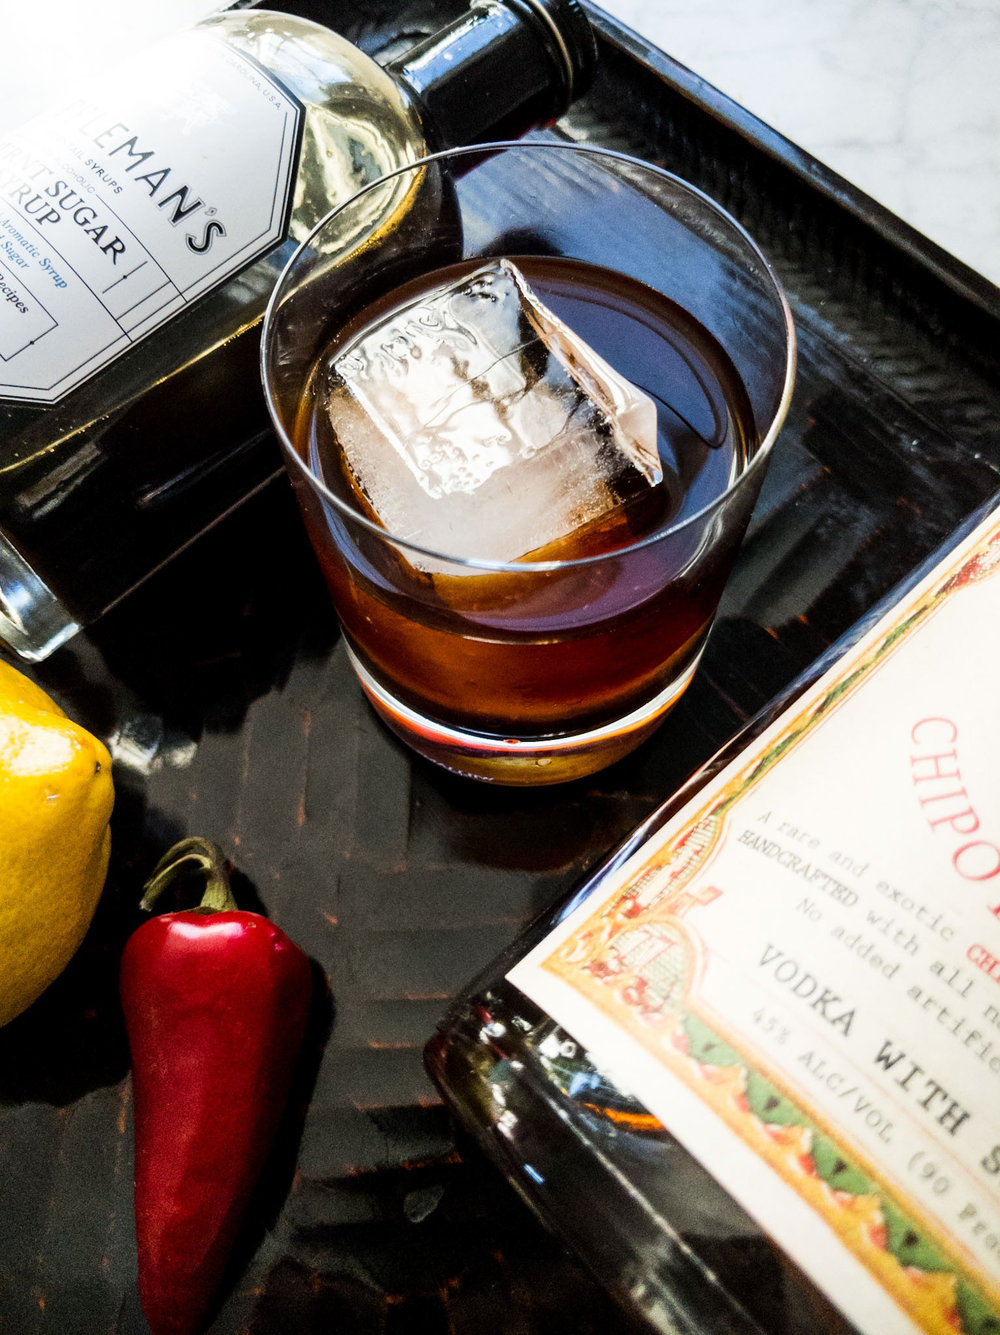 DEATH VALLEY OLD FASHIONED - Muddled red jalepeno & lemon1/4 Tippleman's Burnt Sugar Syrup 2 oz Dr. Zzyzx Chipotle Vodka